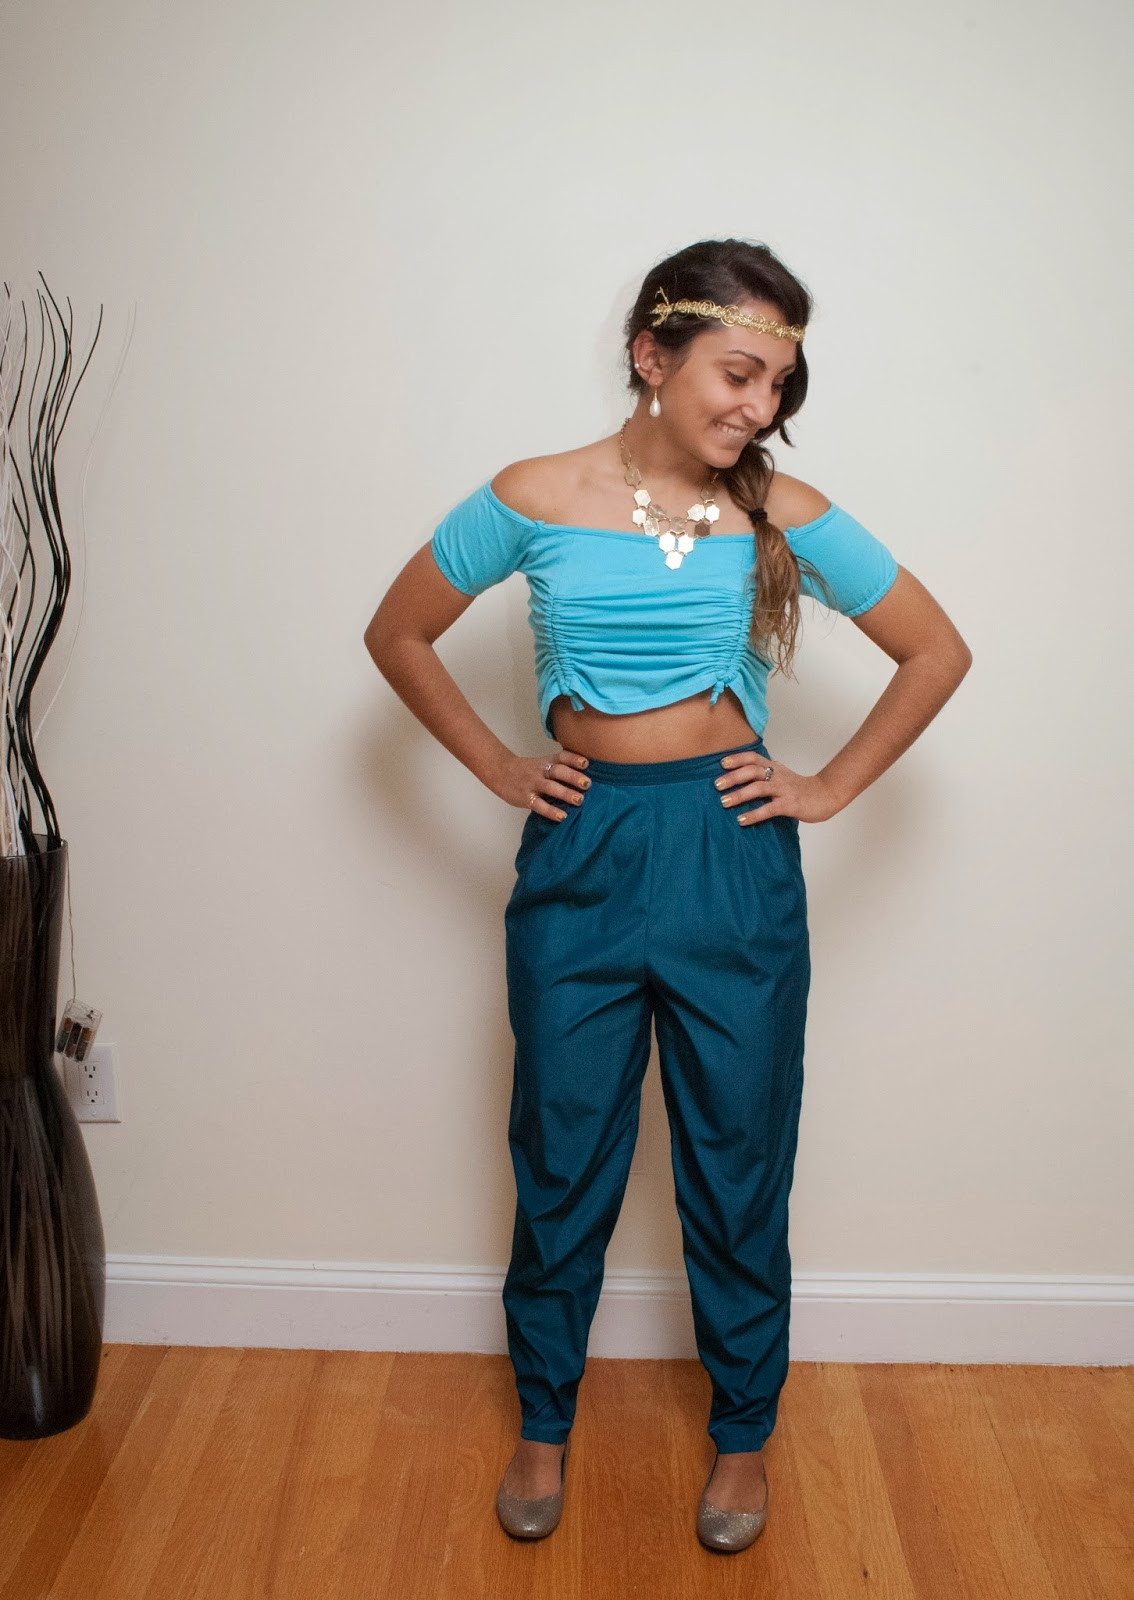 Best ideas about Jasmine DIY Costume . Save or Pin Halloween Costume Ideas Week 2 of 4 Good better dressed Now.